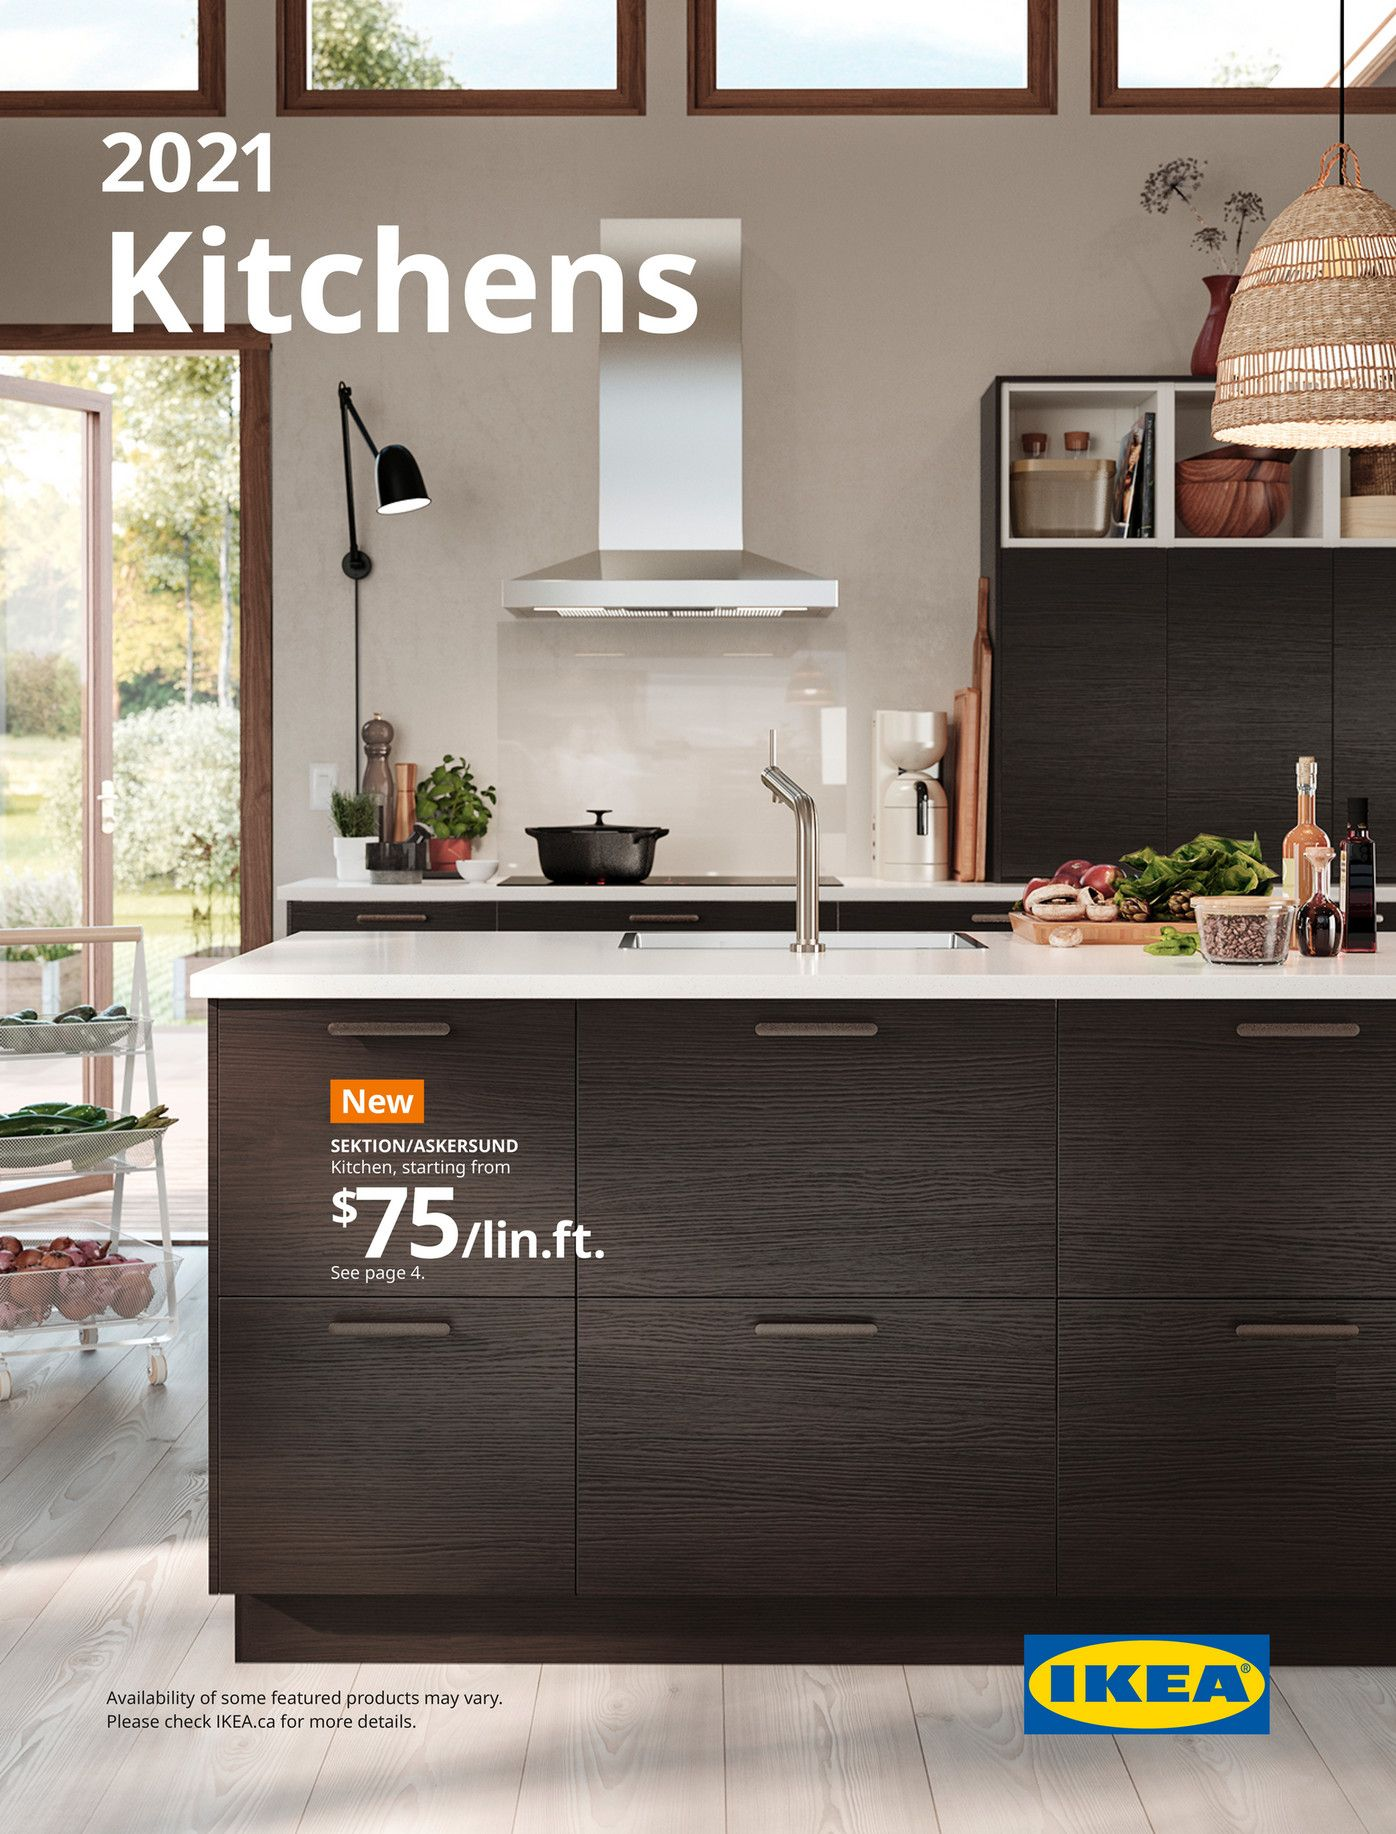 Ikea Kitchen Sale 2020 Kitchen 2021 Page 1 Decor Object Your Daily Dose Of Best Home Decorating Ideas Interior Design Inspiration